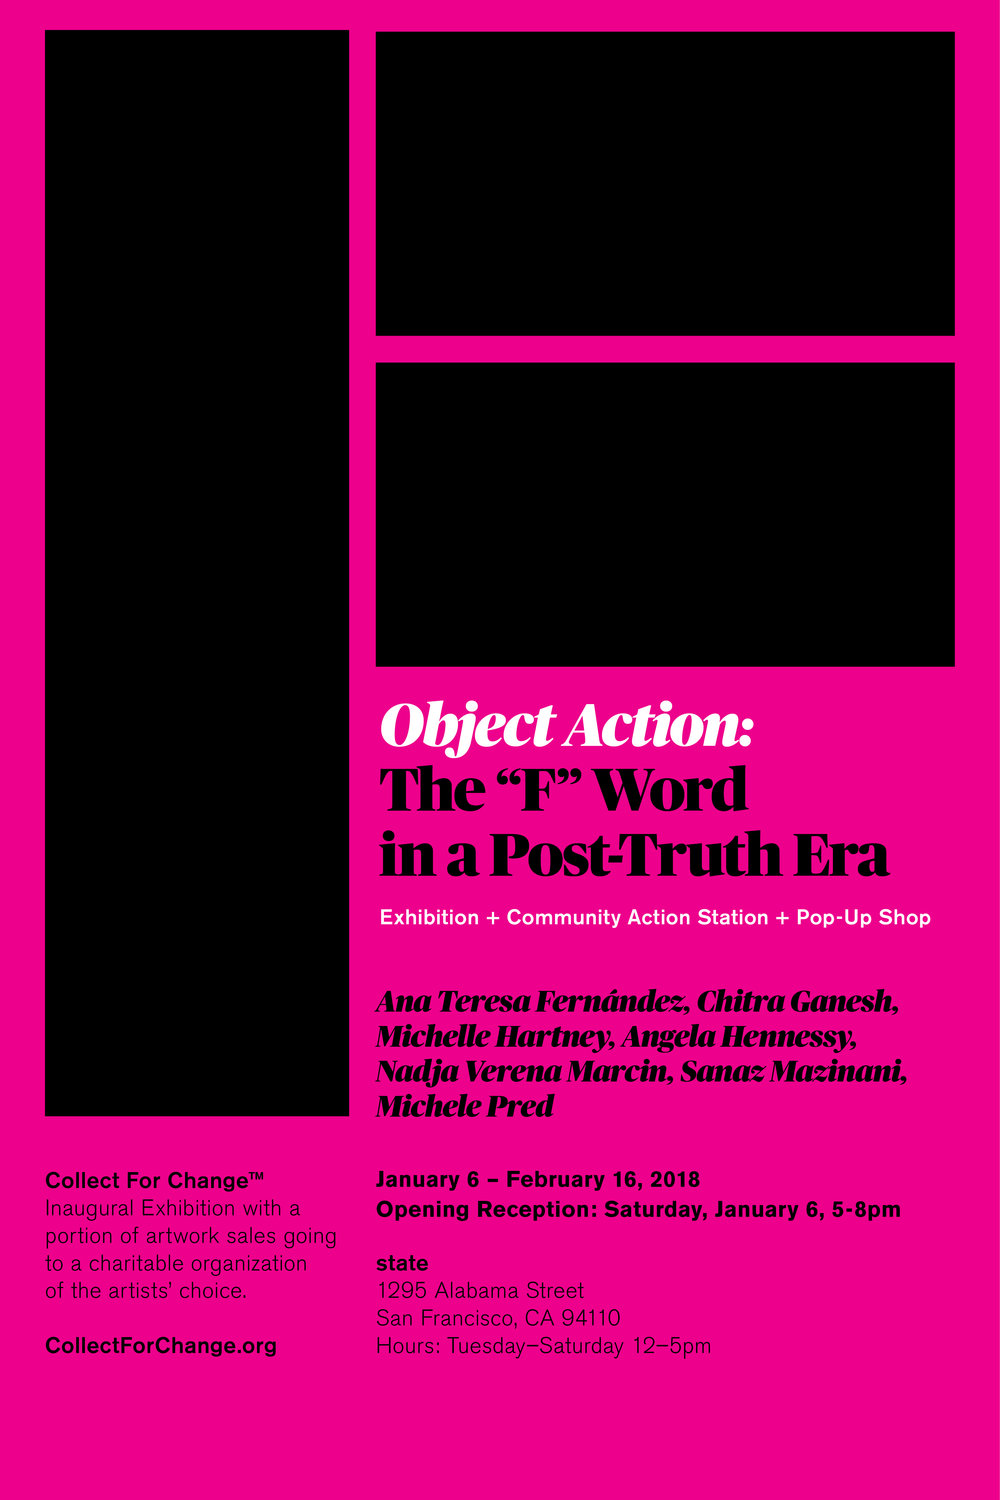 object-action-the-f-word-in-a-post-truth-era-Invite.jpg